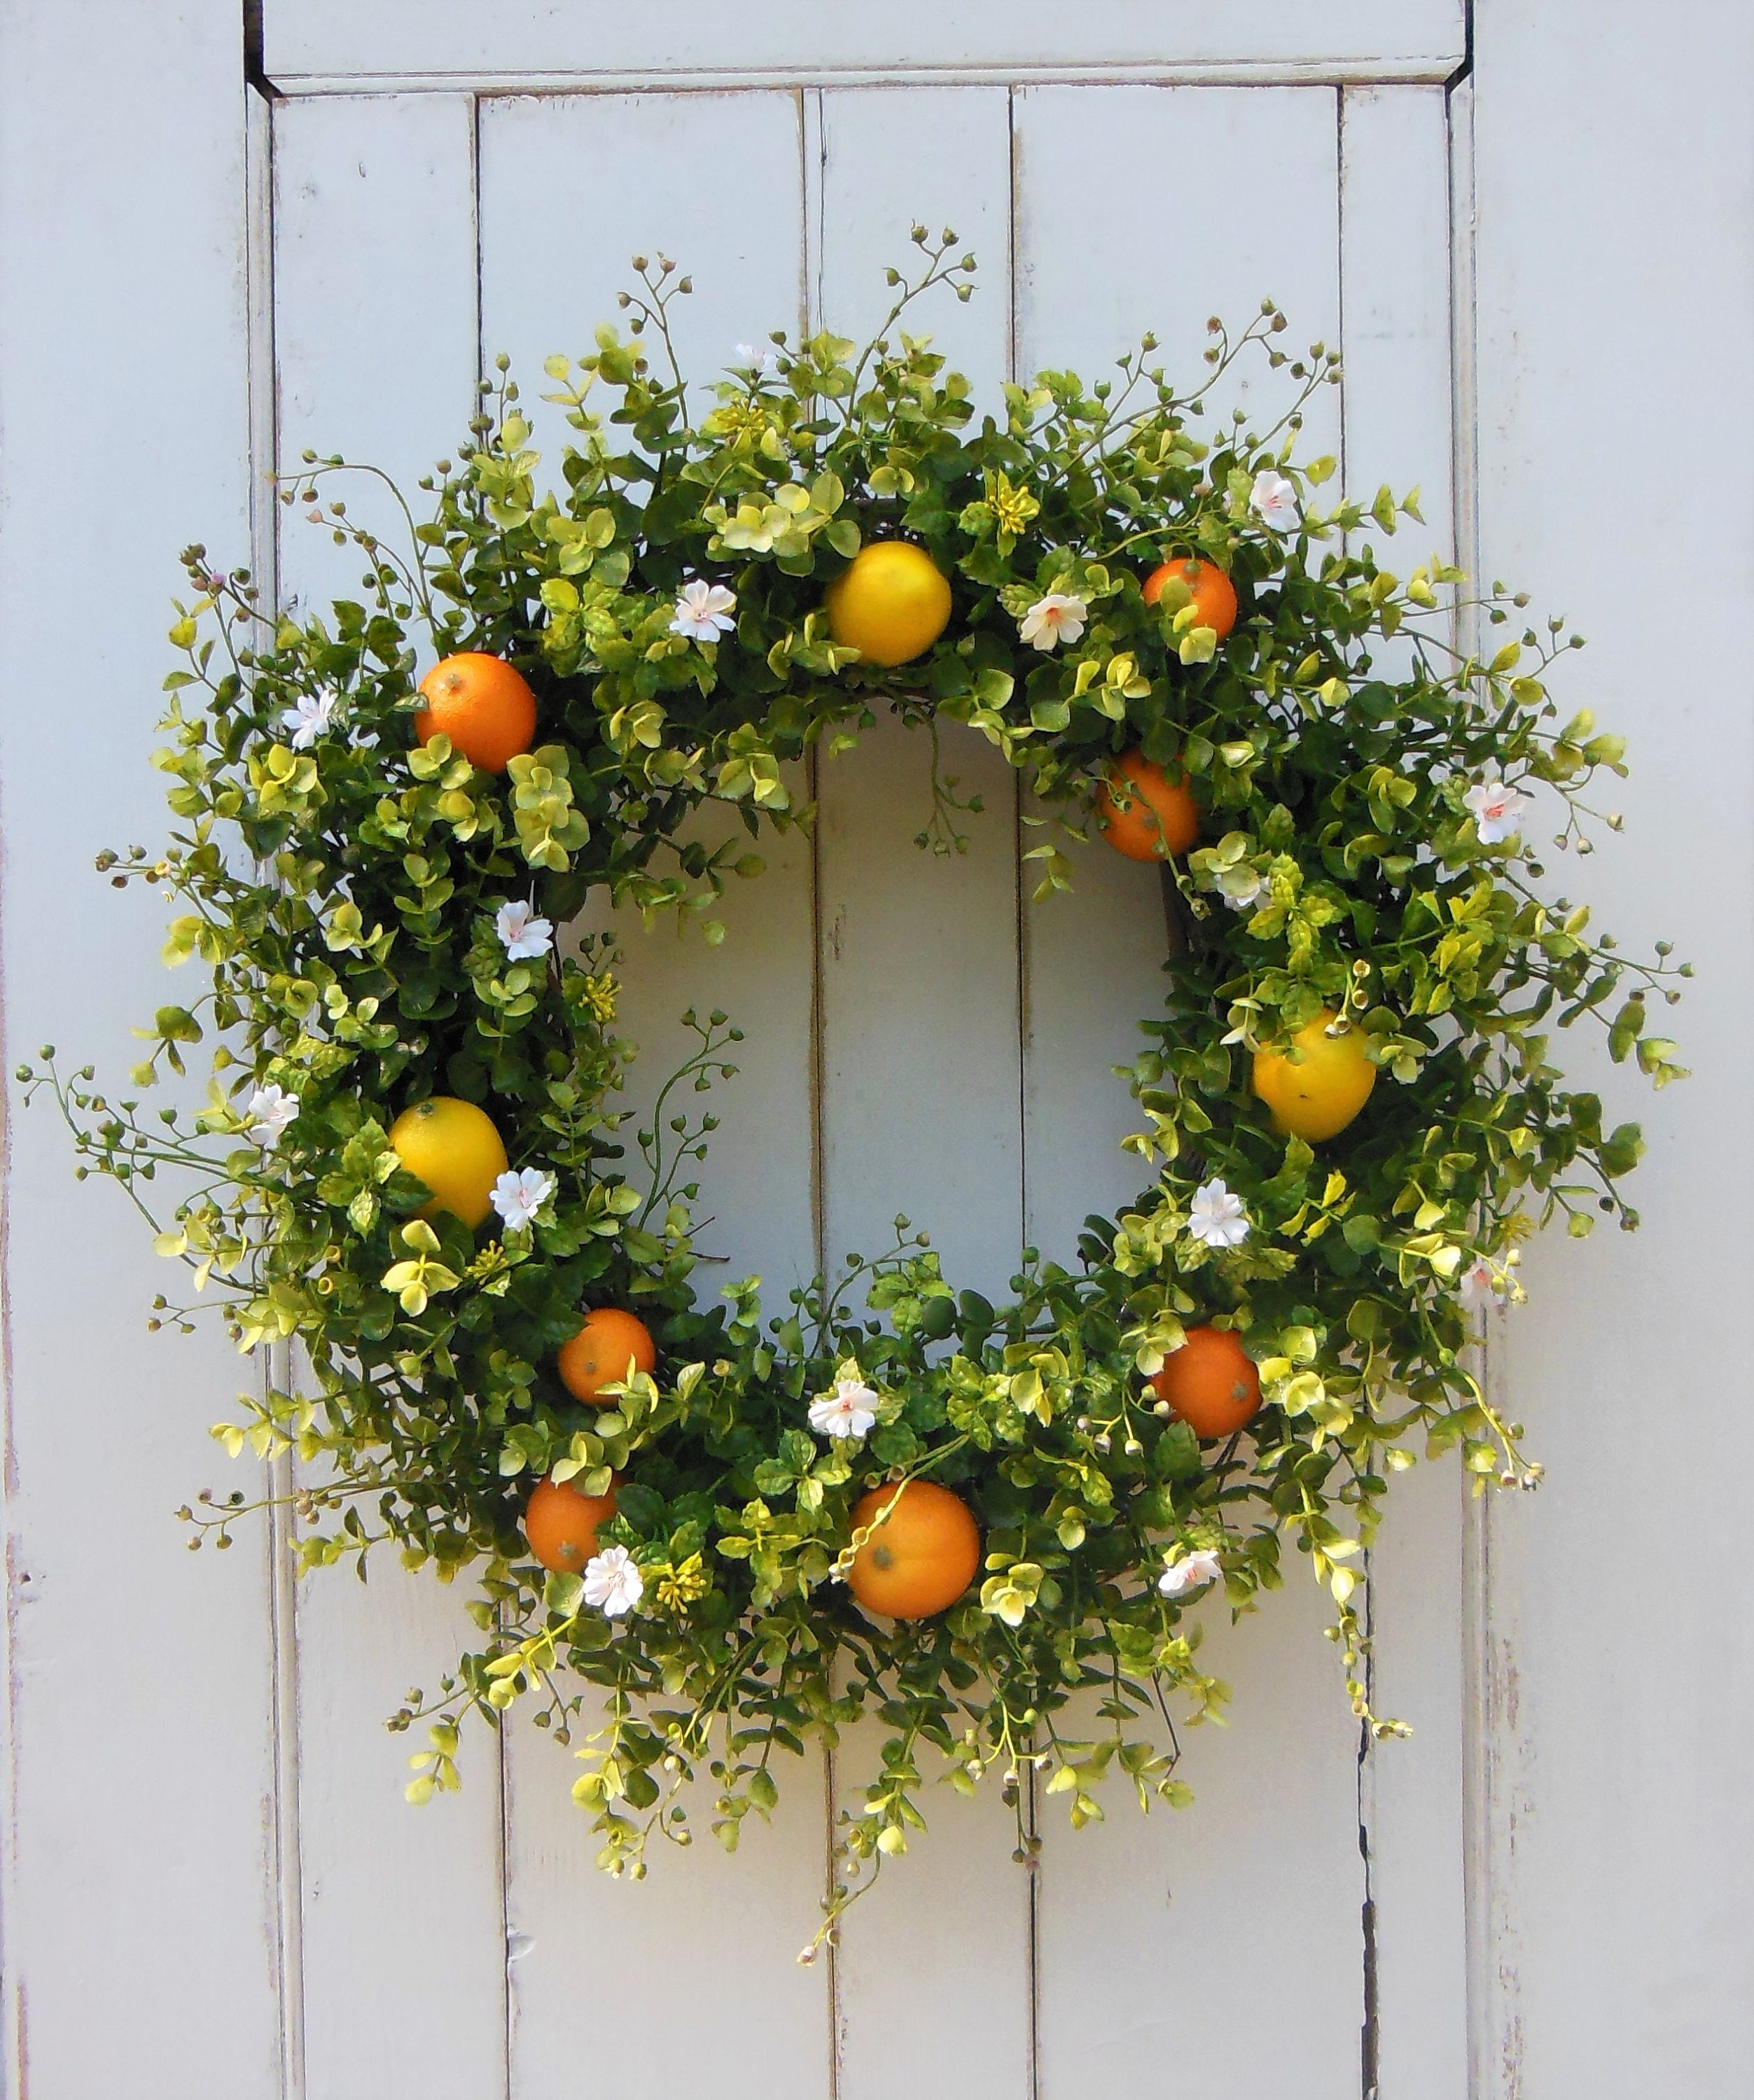 Summer Wreath, Summer Wreath For Front Door, Summer Front Door Wreath,  Lemon Wreath, Citrus Wreath, Oranges Wreath, Front Door Wreath,Wreath